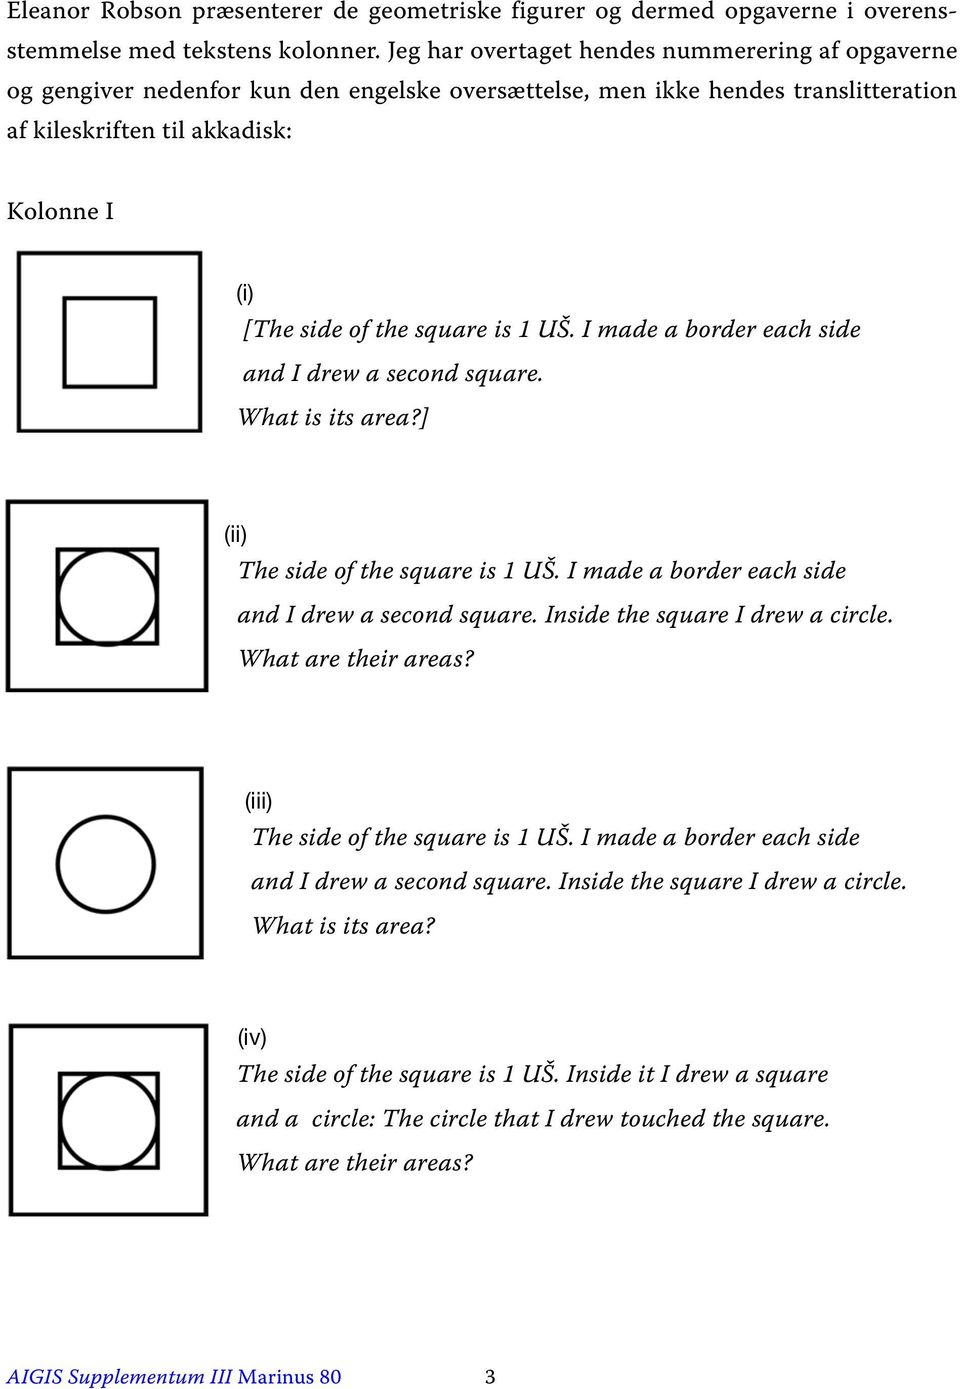 square is 1 UŠ. I made a border each side and I drew a second square. What is its area?] (ii) The side of the square is 1 UŠ. I made a border each side and I drew a second square. Inside the square I drew a circle.